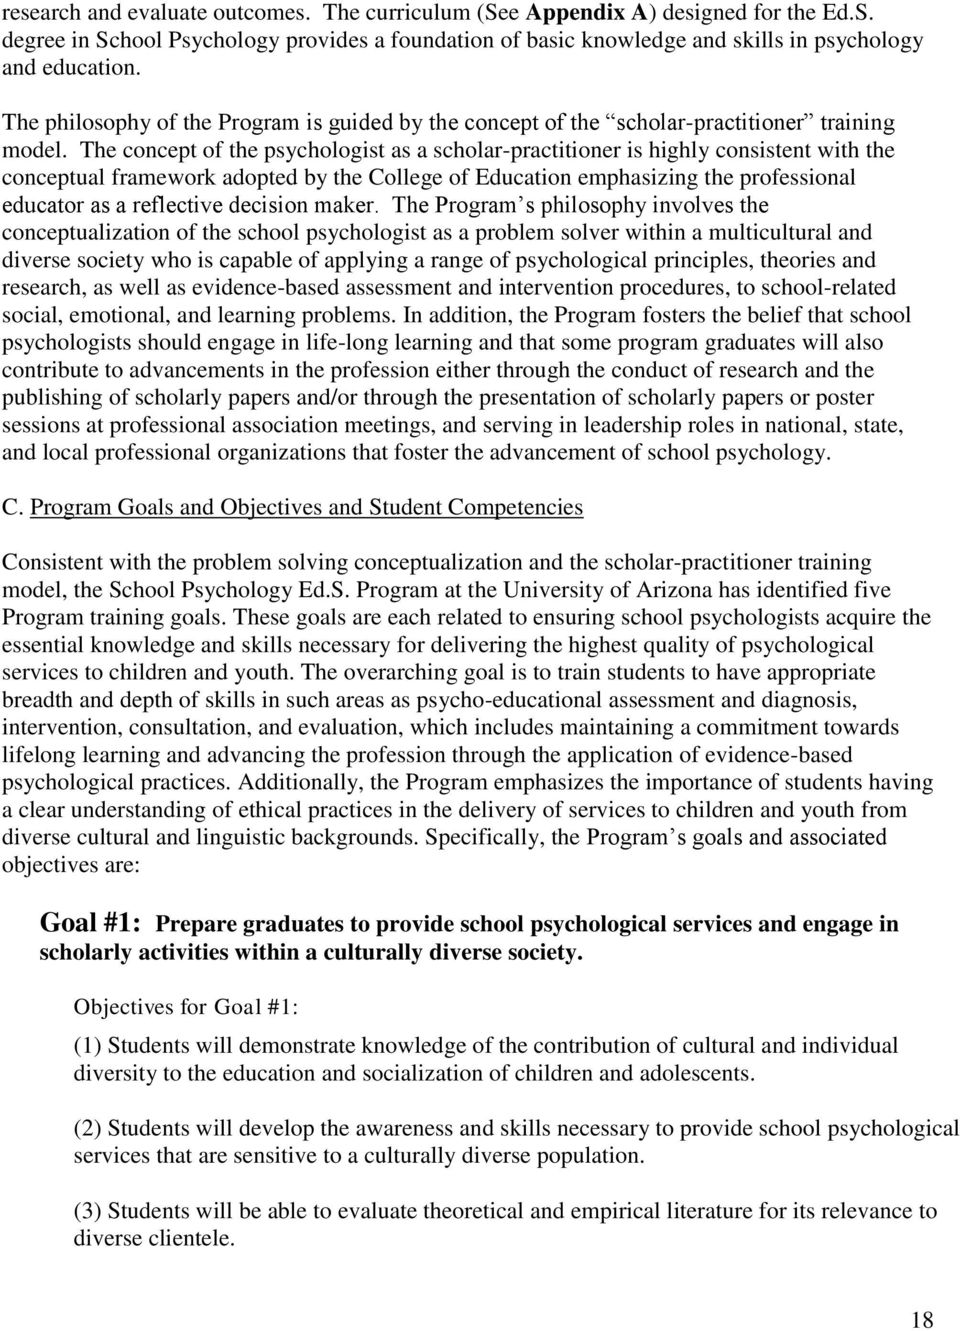 The concept of the psychologist as a scholar-practitioner is highly consistent with the conceptual framework adopted by the College of Education emphasizing the professional educator as a reflective